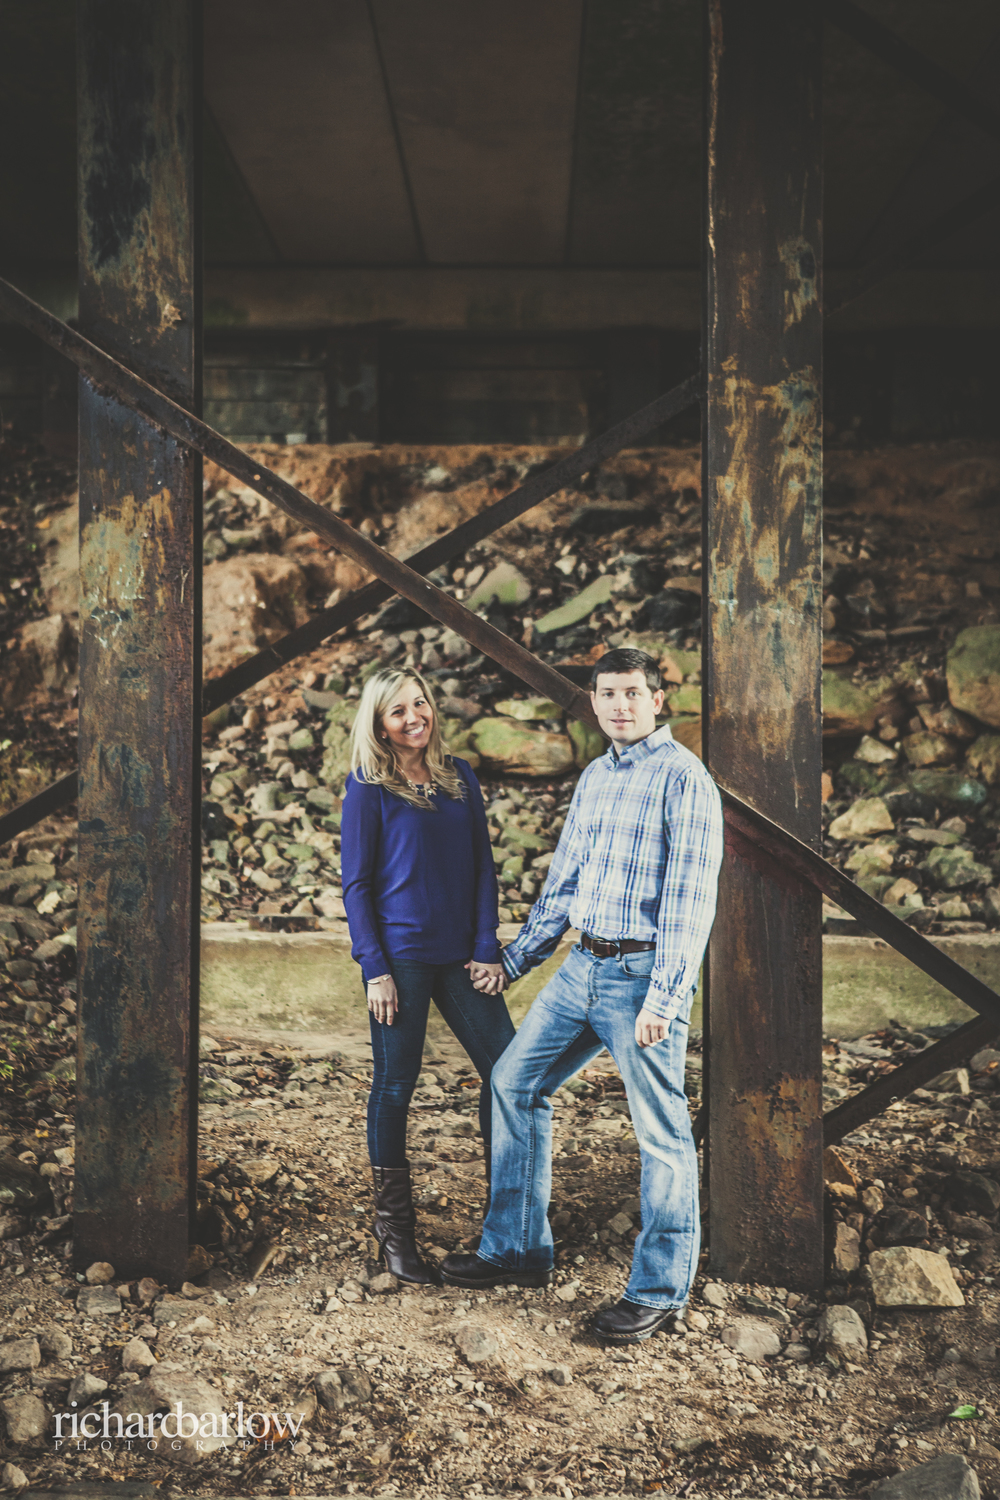 richard barlow photography - Garrett and Heather Engagement Session Raleigh-16.jpg